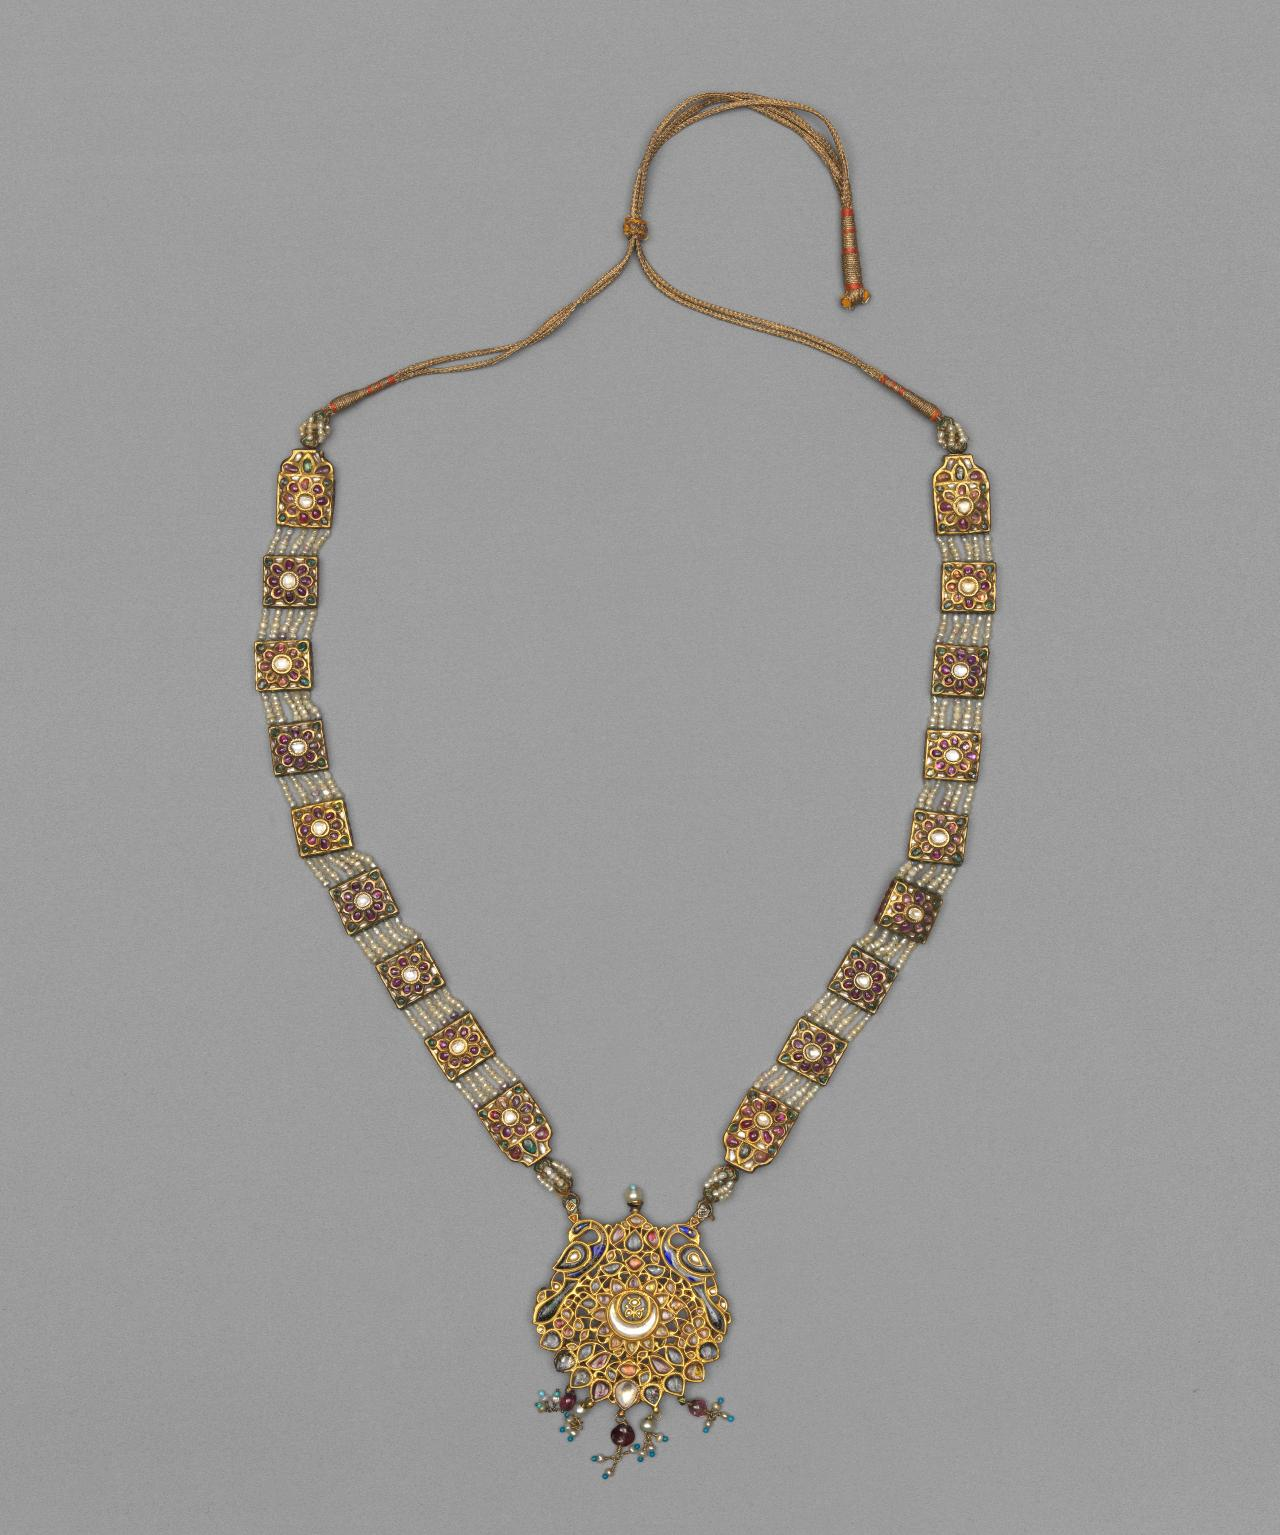 Durbar necklace